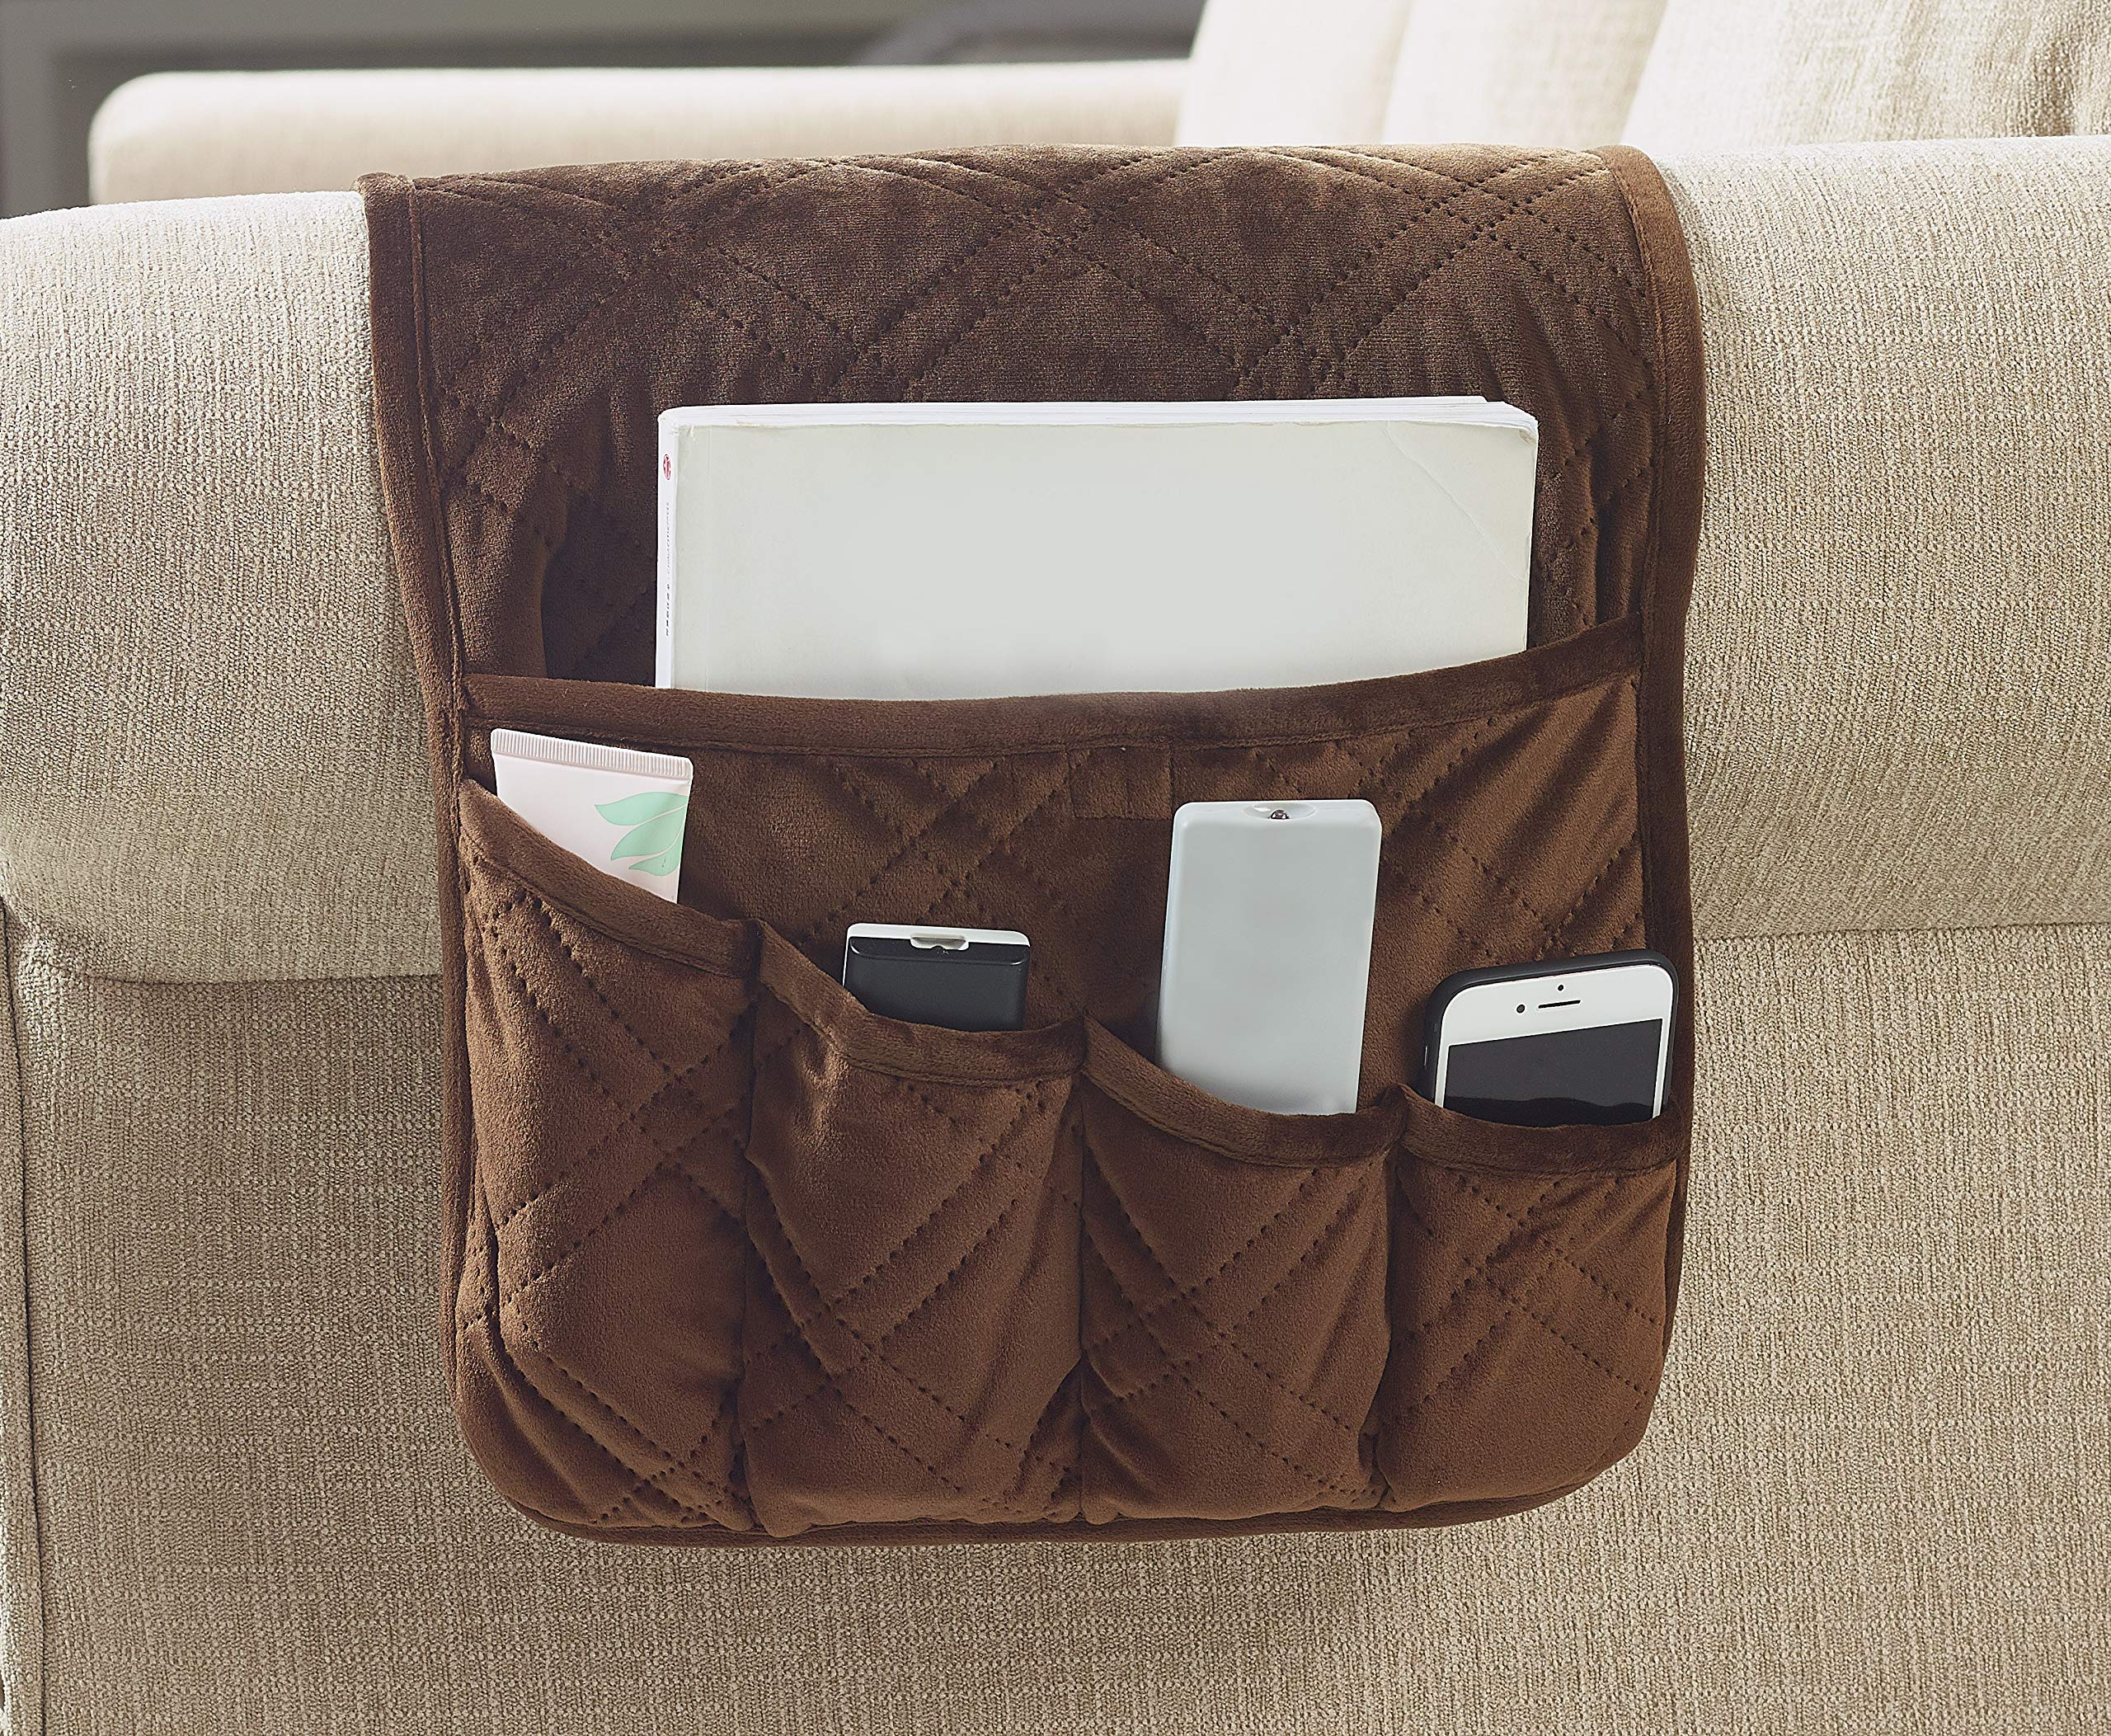 "Brilliant Sunshine Premium Silky Velvet Sofa Armrest 5 Pockets Organizer, Couch Chair Armrest Caddy, Slip Resistant, for TV Remote Control, Phone, Book, Glasses, Magazine, 35""×13"", Chocolate"